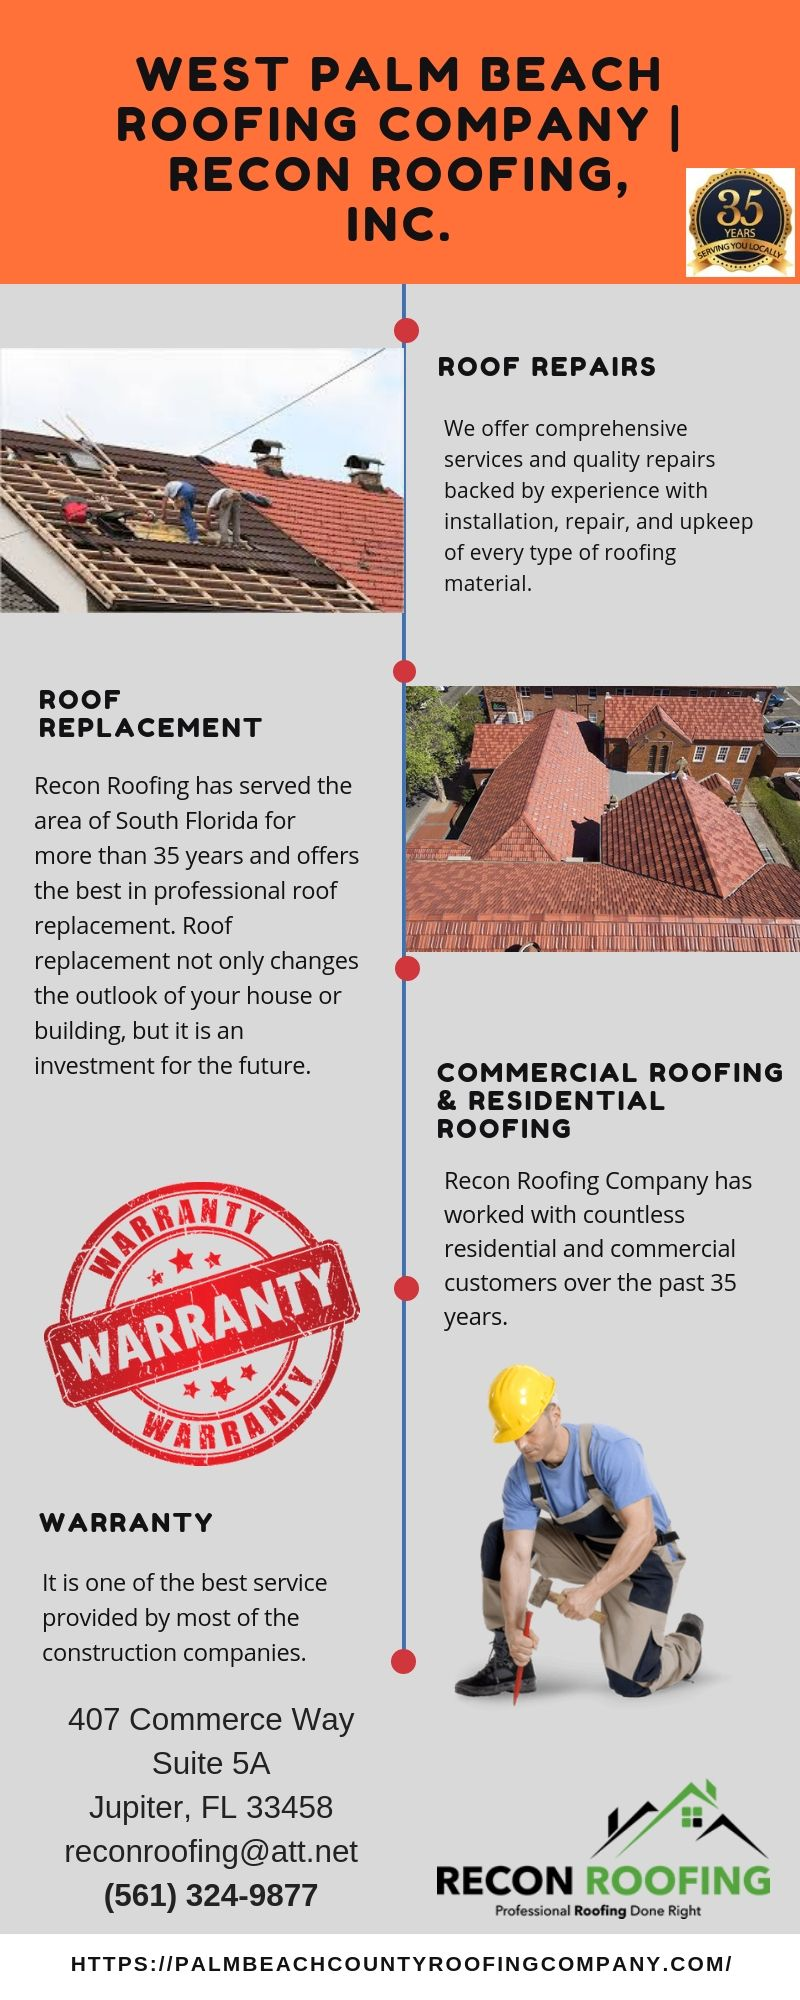 West Palm Beach Roofing Company Recon Roofing Inc 561 324 9877 Palm Beach West Palm Beach West Palm